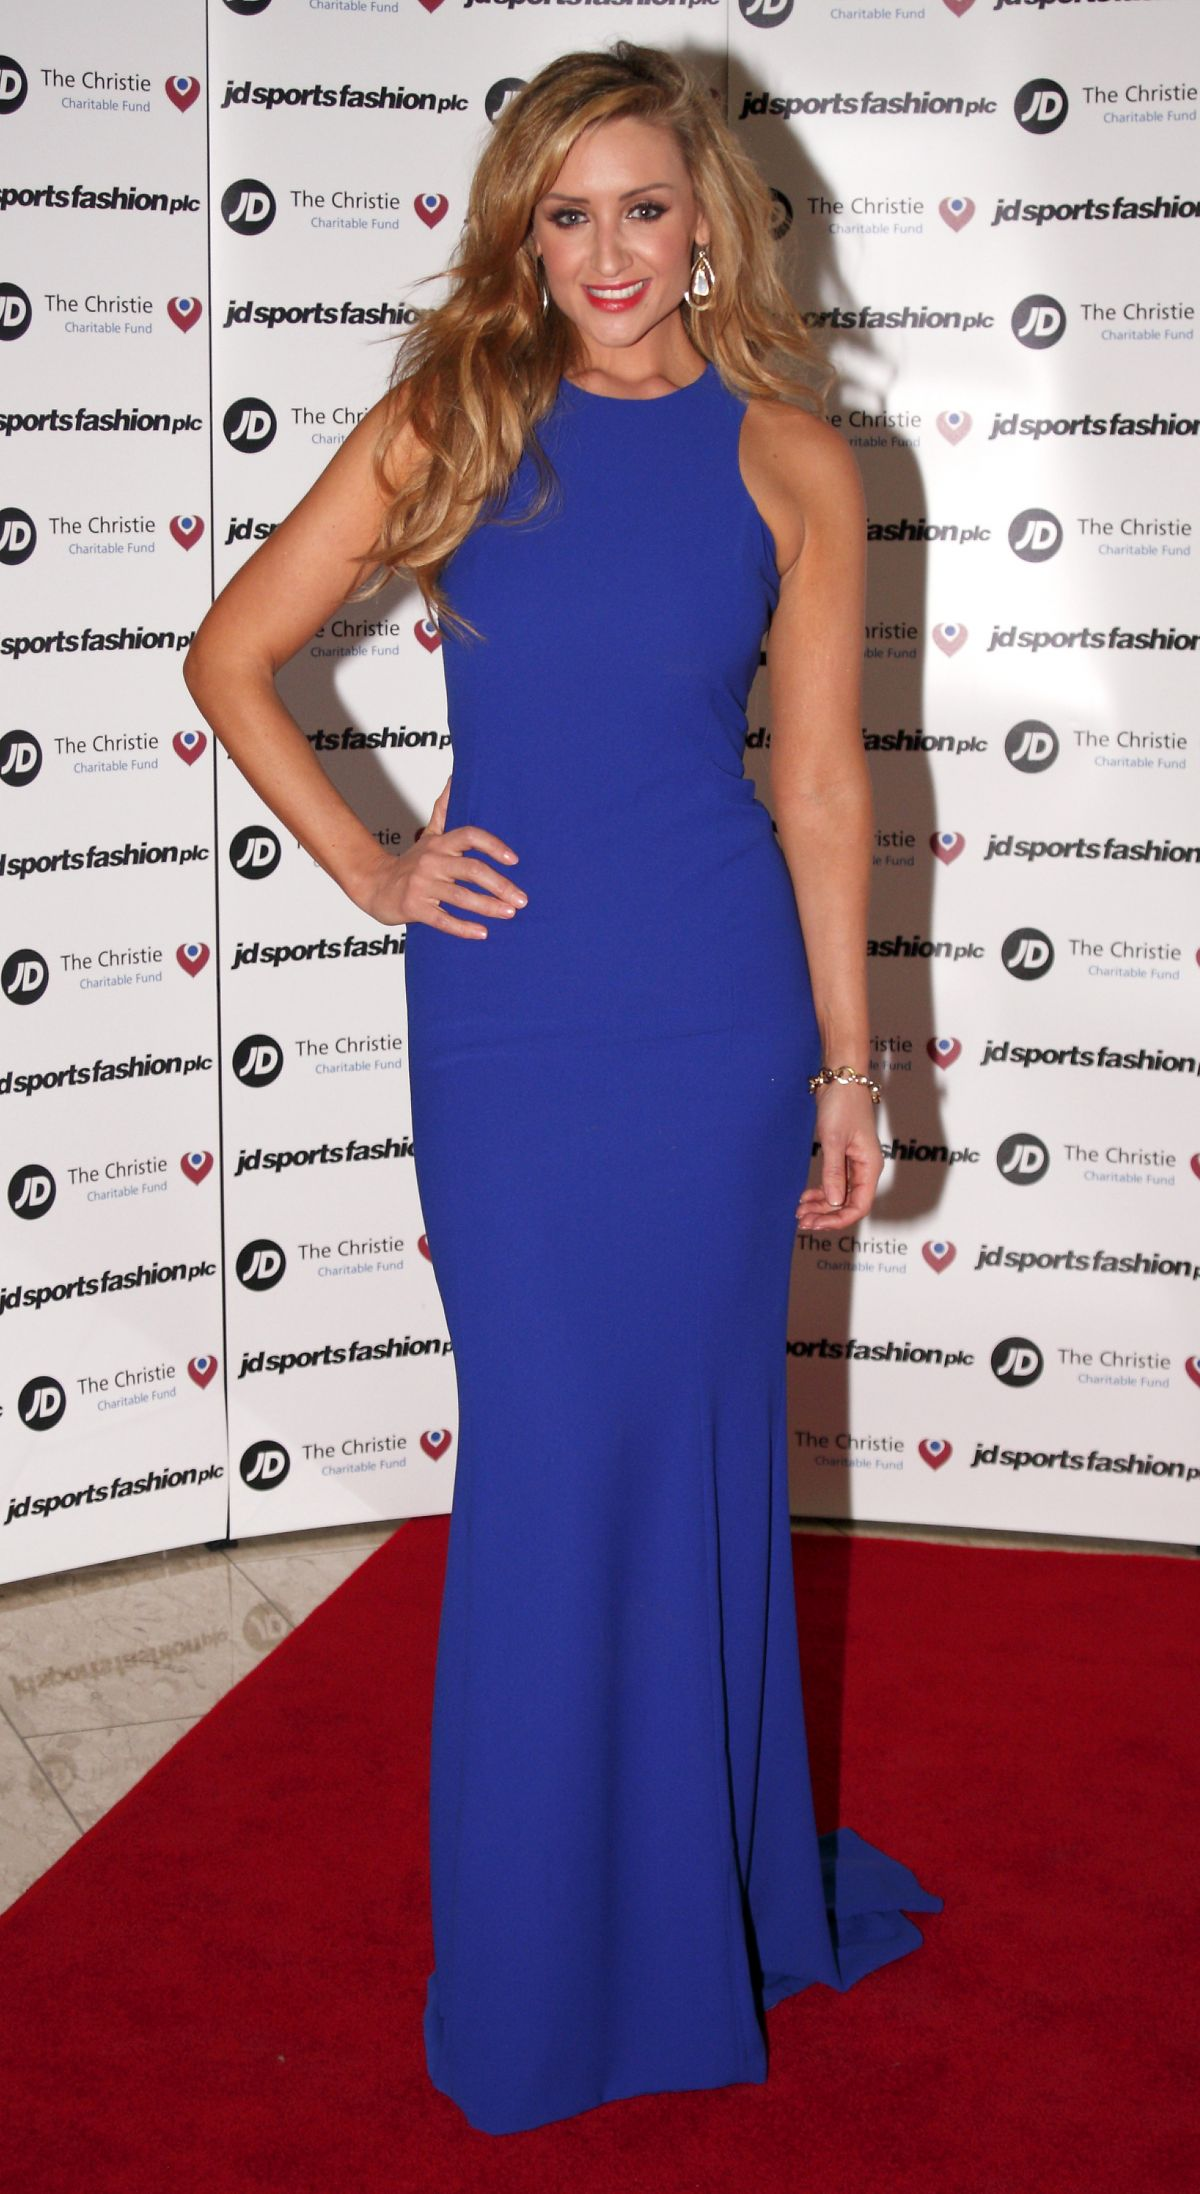 Catherine Tyldesley At JD Diamond Charity Ball In